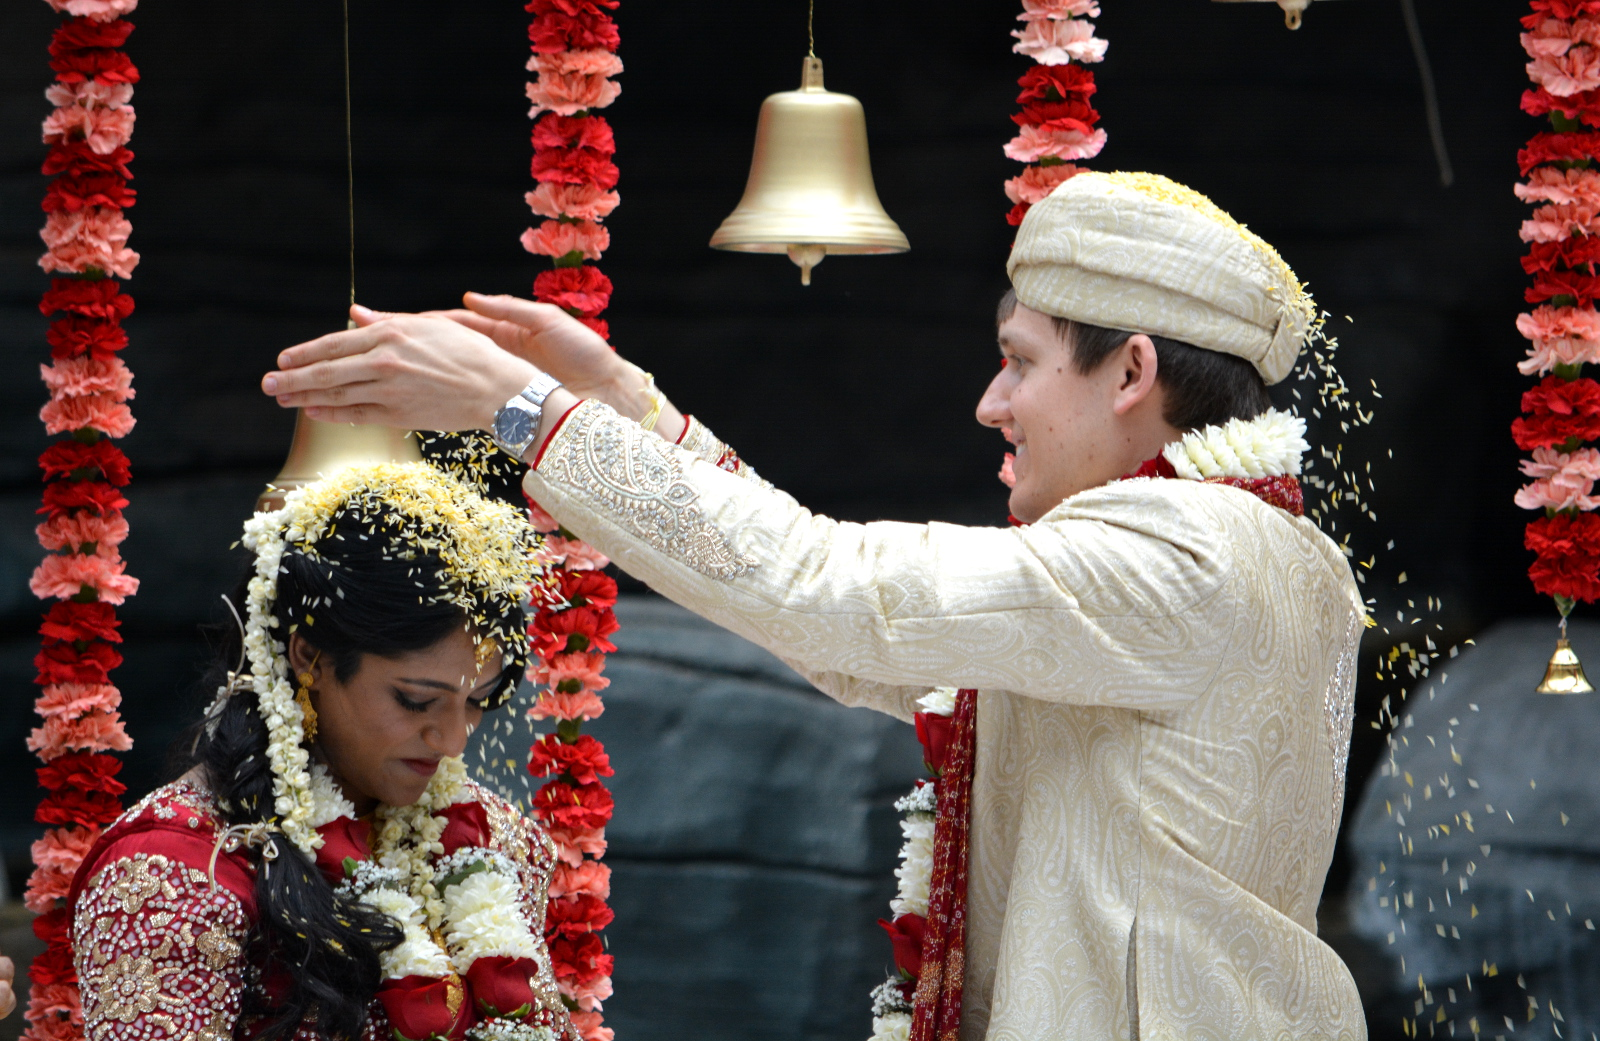 cozy birdhouse | joe and roshni's hindu wedding ceremony